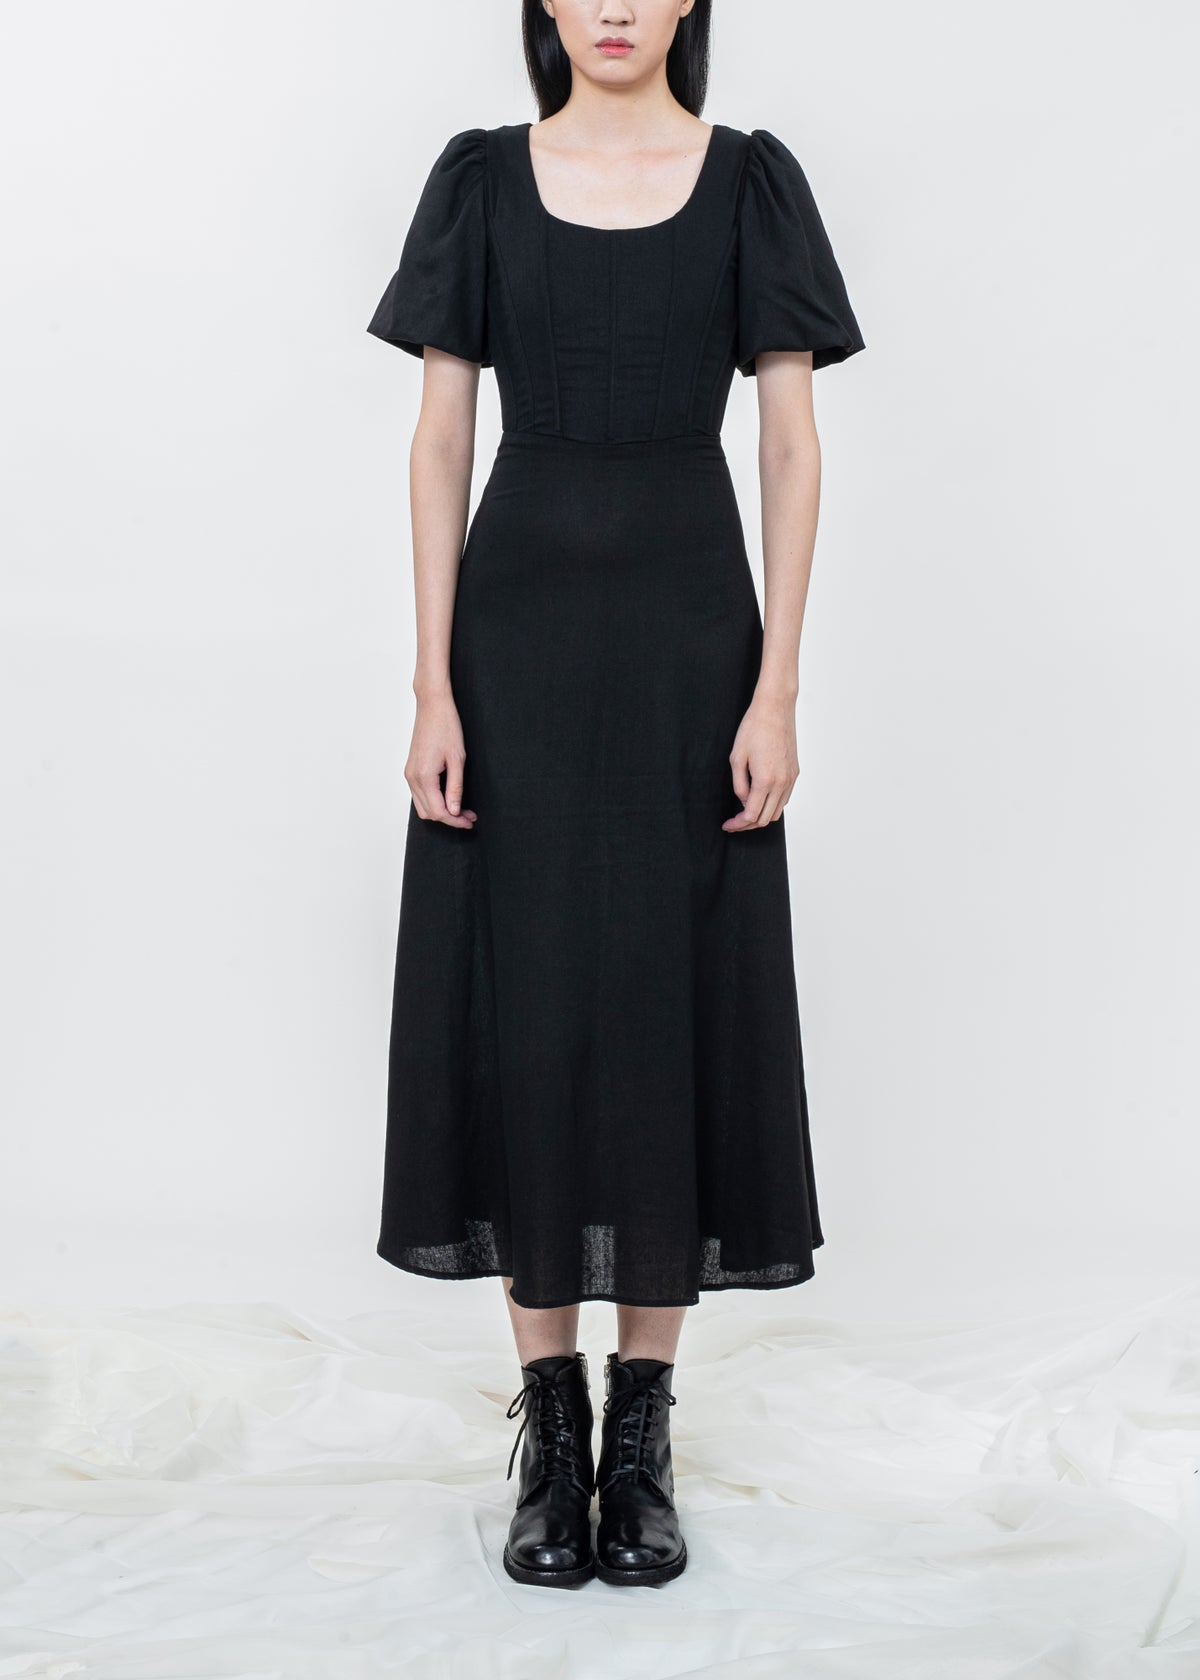 Image of Black Corset Puff Sleeves Dress - PLEASE INQUIRE